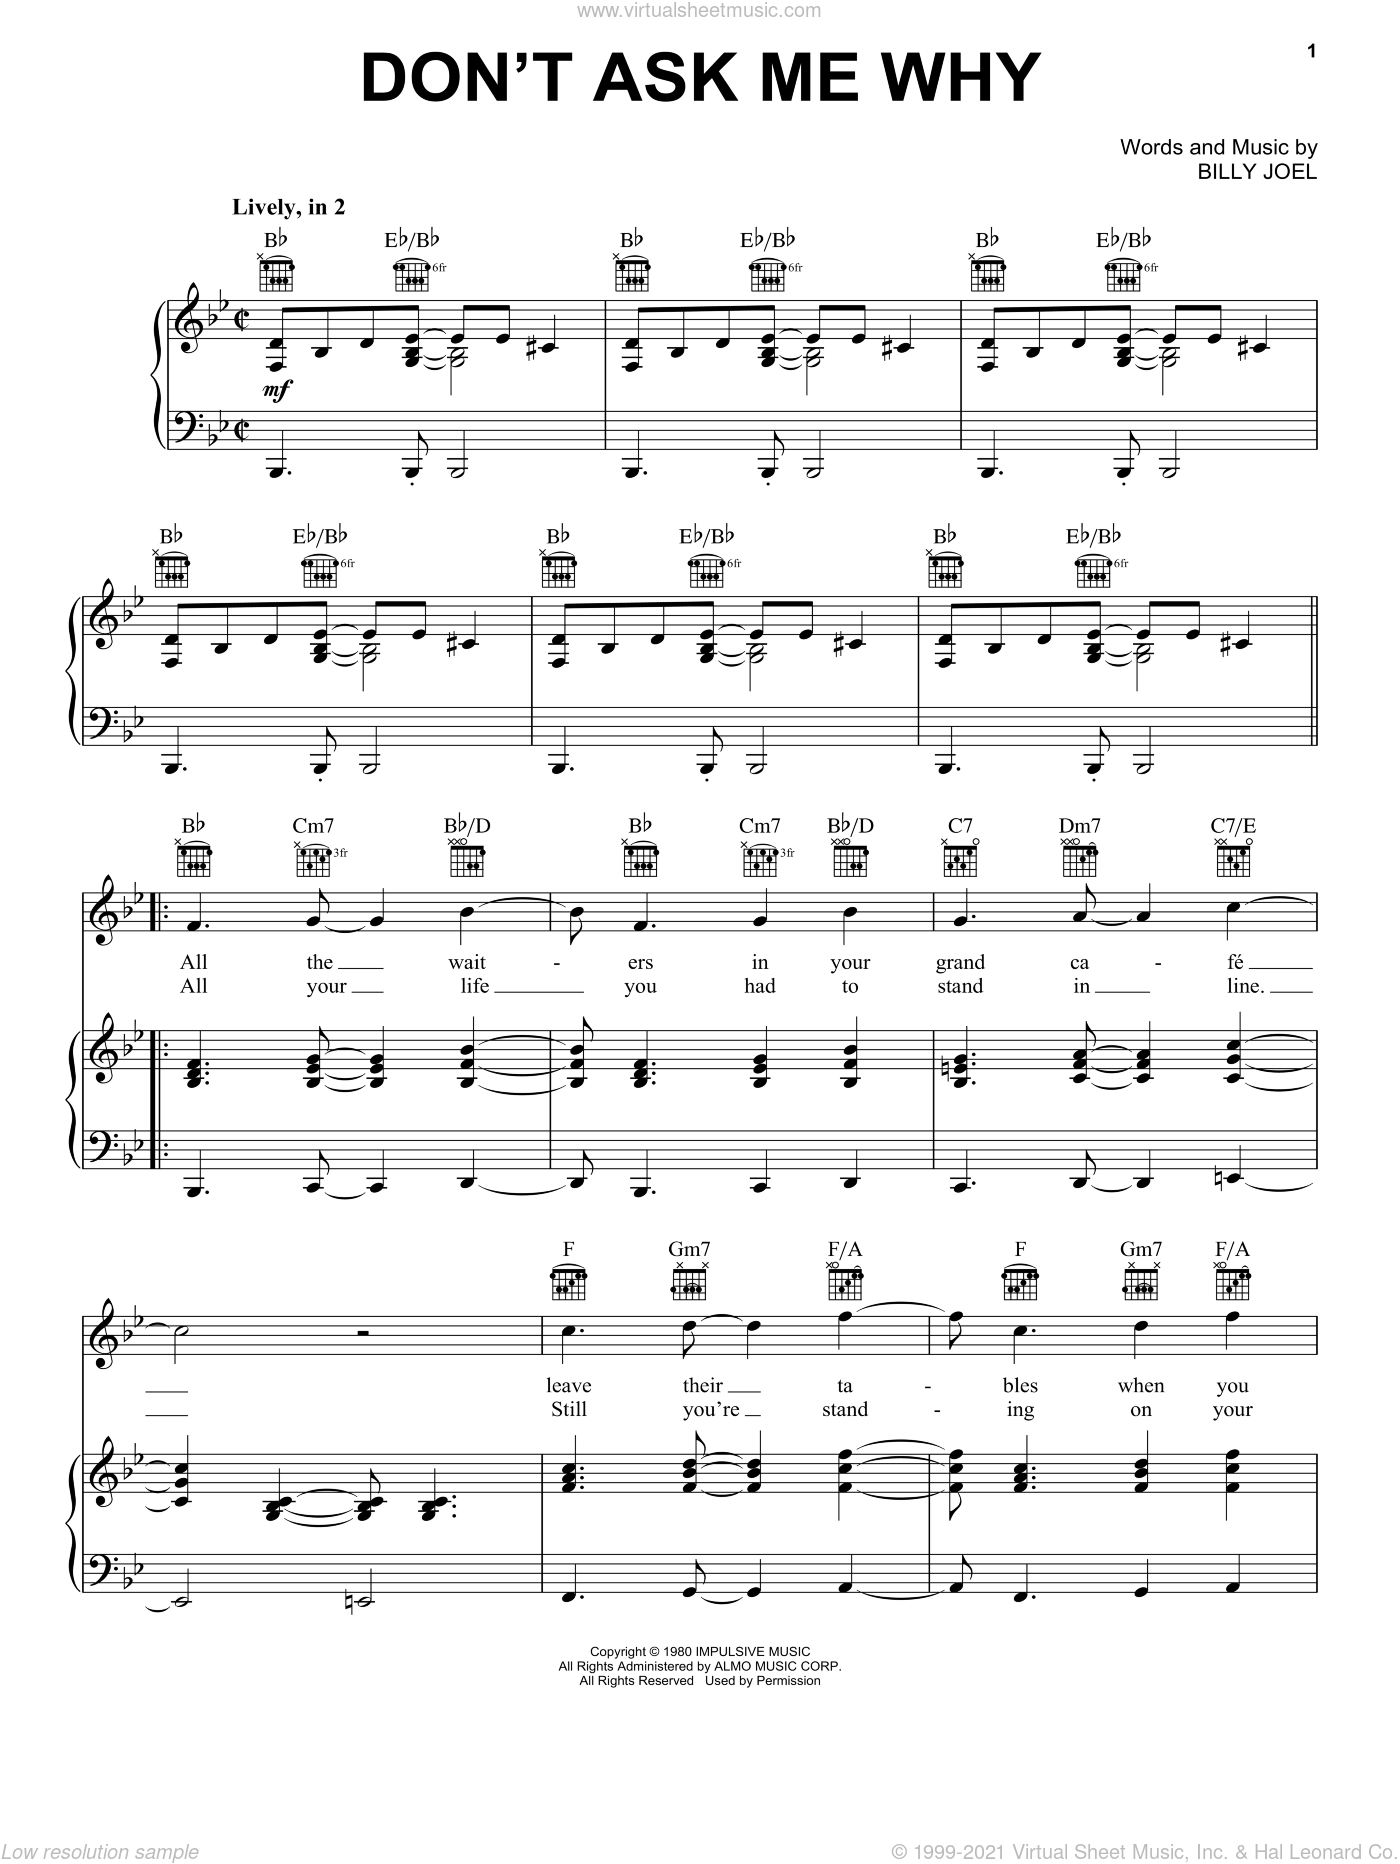 Don't Ask Me Why sheet music for voice, piano or guitar by Billy Joel, intermediate skill level